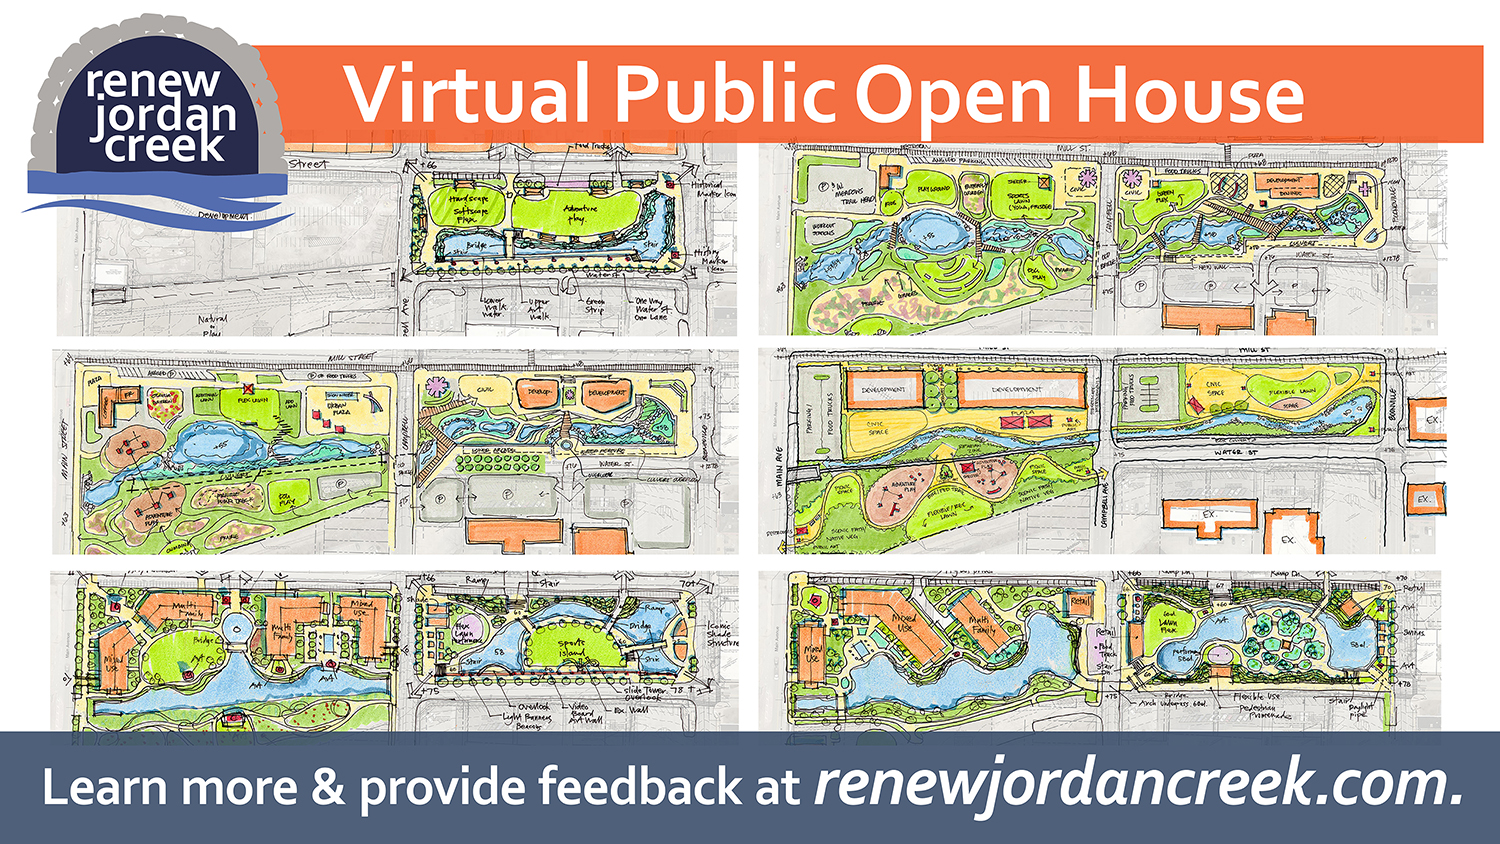 City of Springfield Hosts Virtual Open House for Renew Jordan Creek